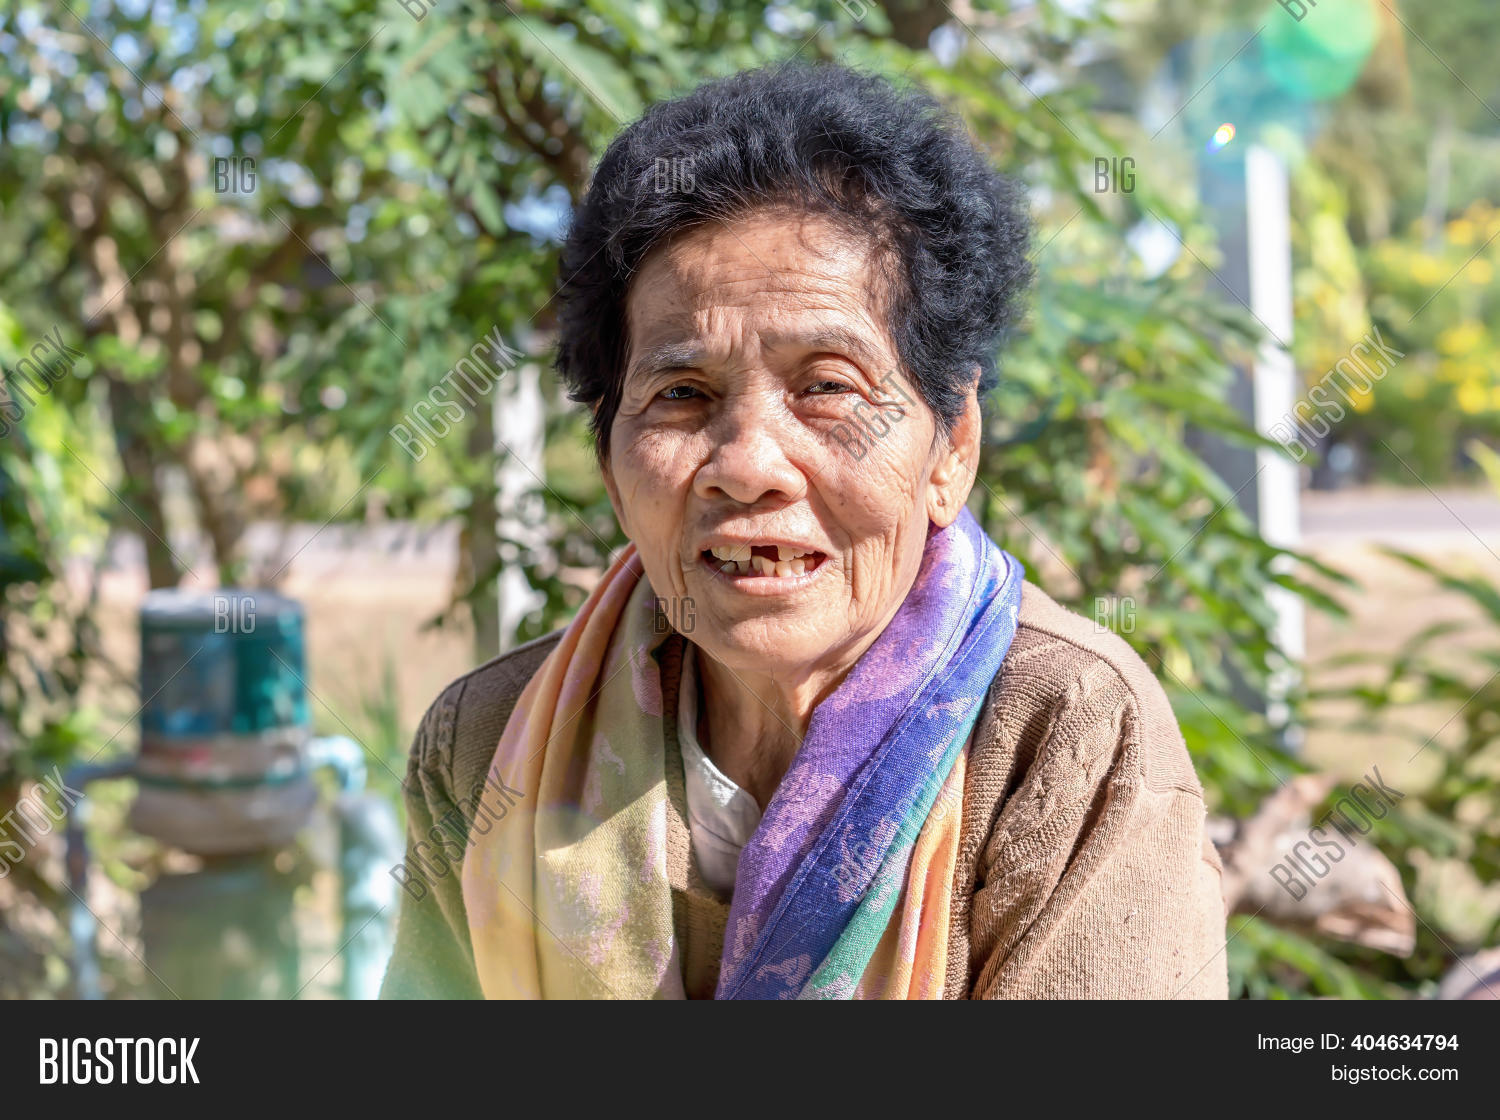 Woman old asian Man who